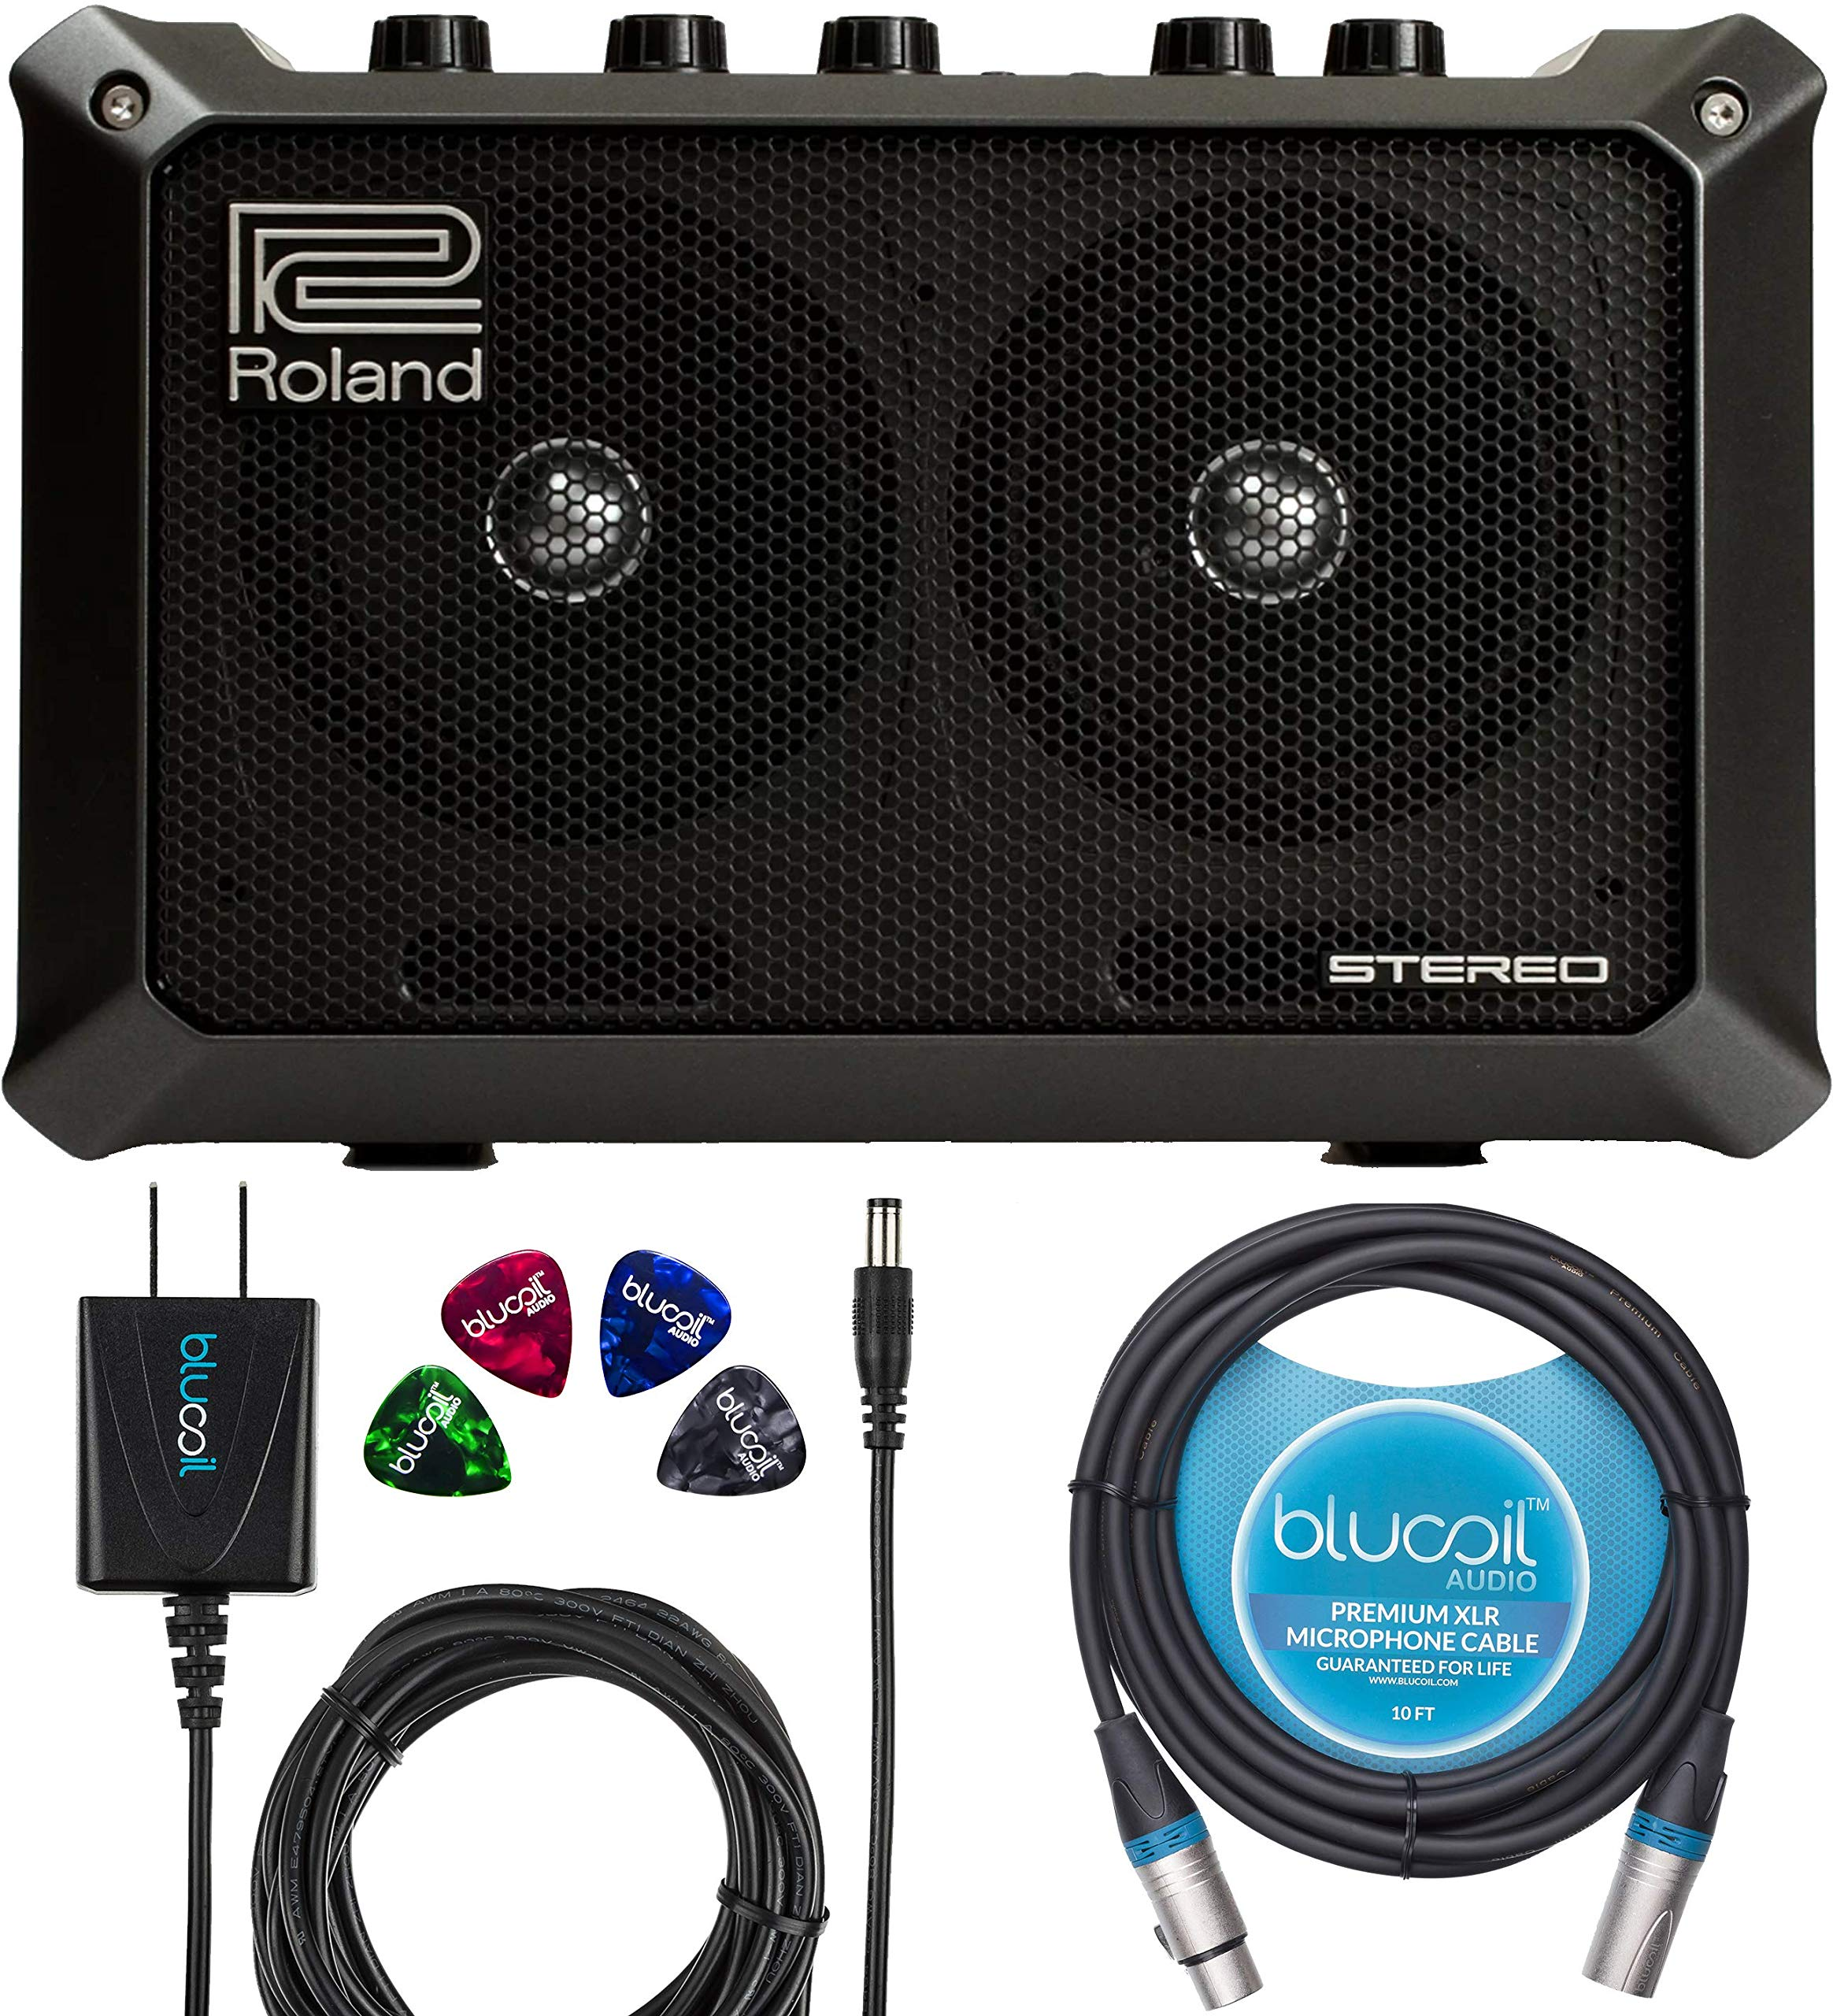 Roland MOBILE CUBE Portable Stereo Amplifier Bundle with Blucoil Slim 9V Power Supply AC Adapter, 10-Ft Balanced XLR Cable, and 4-Pack of Celluloid Guitar Picks